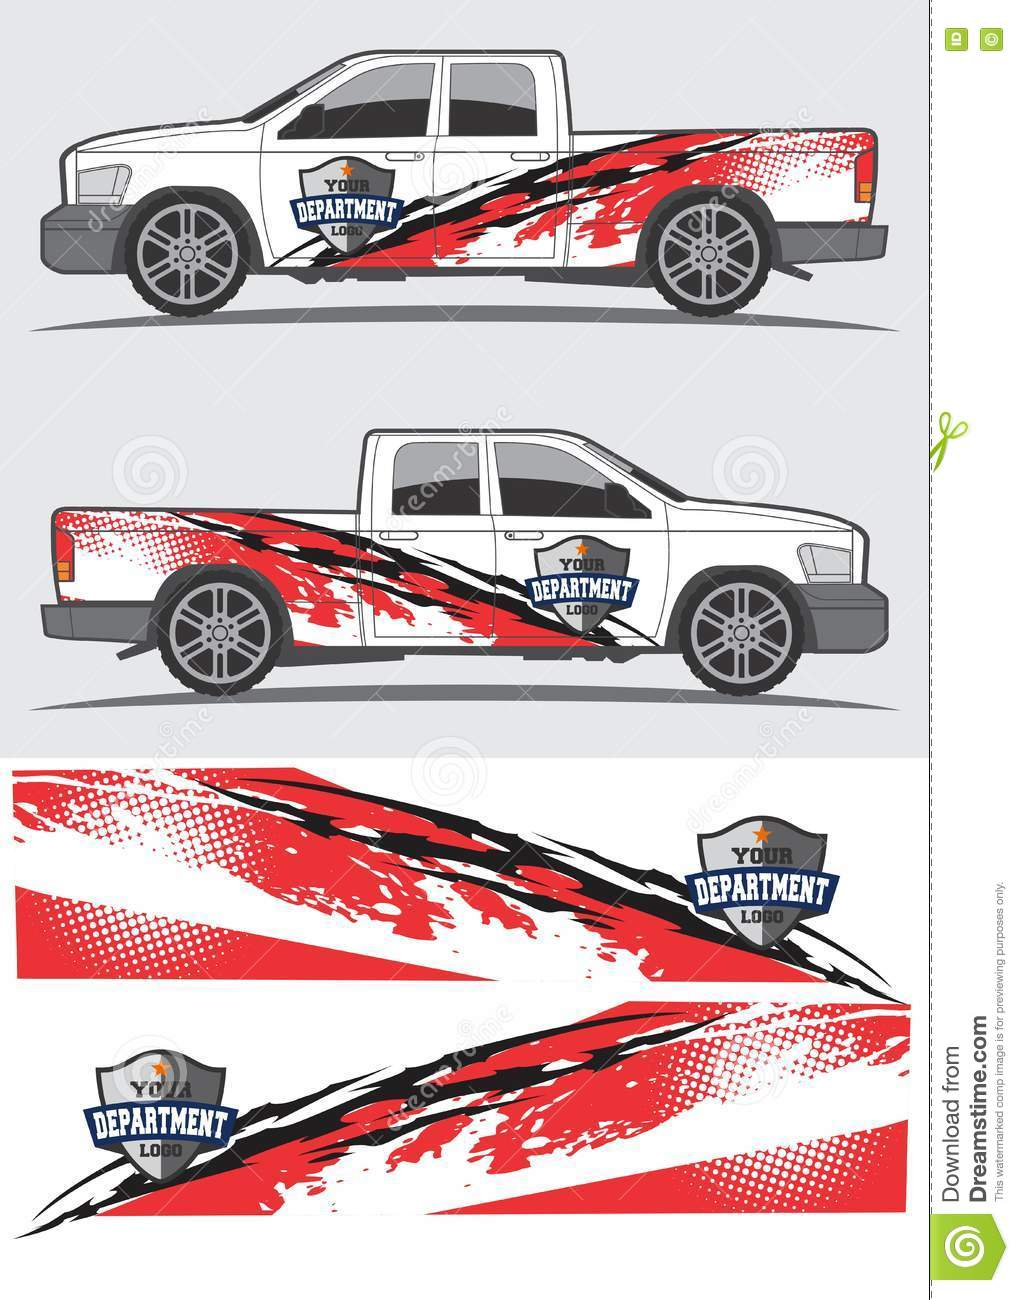 Graphic design kit for truck car van and other vehicle wrap vinyl decal sticker